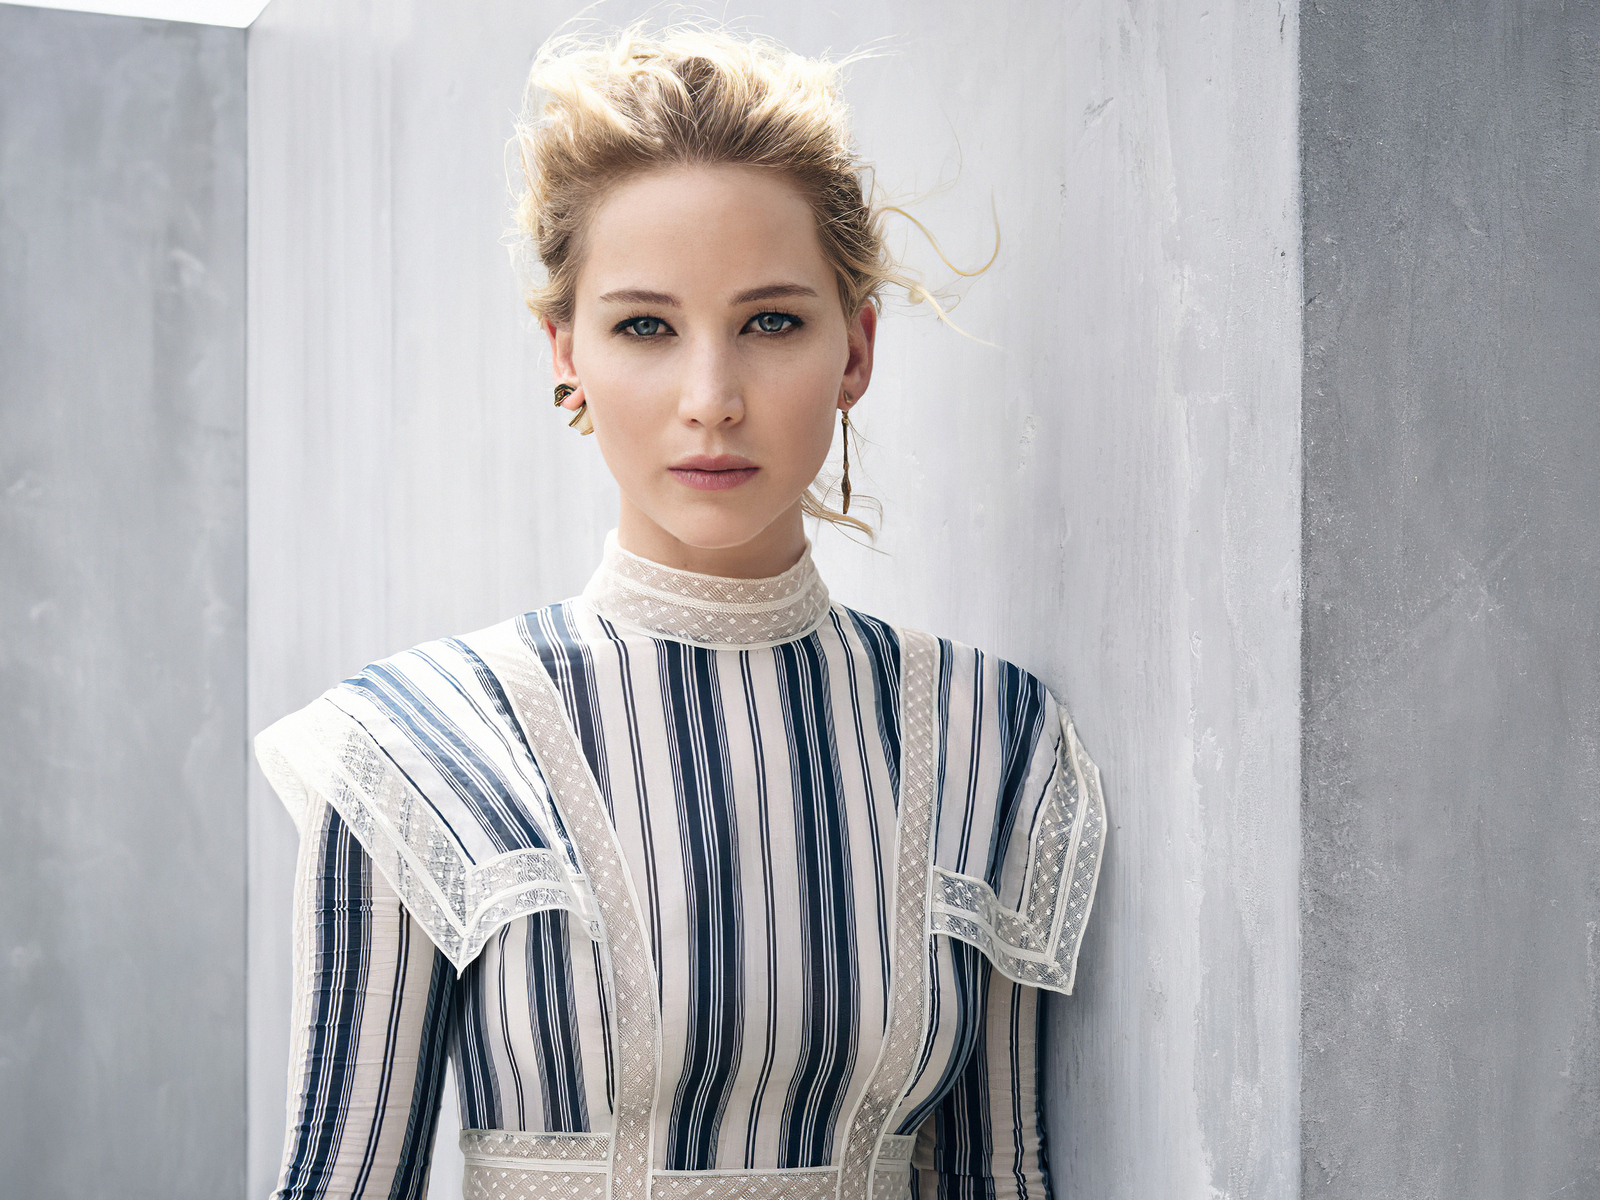 4k-jennifer-lawrence-ro.jpg